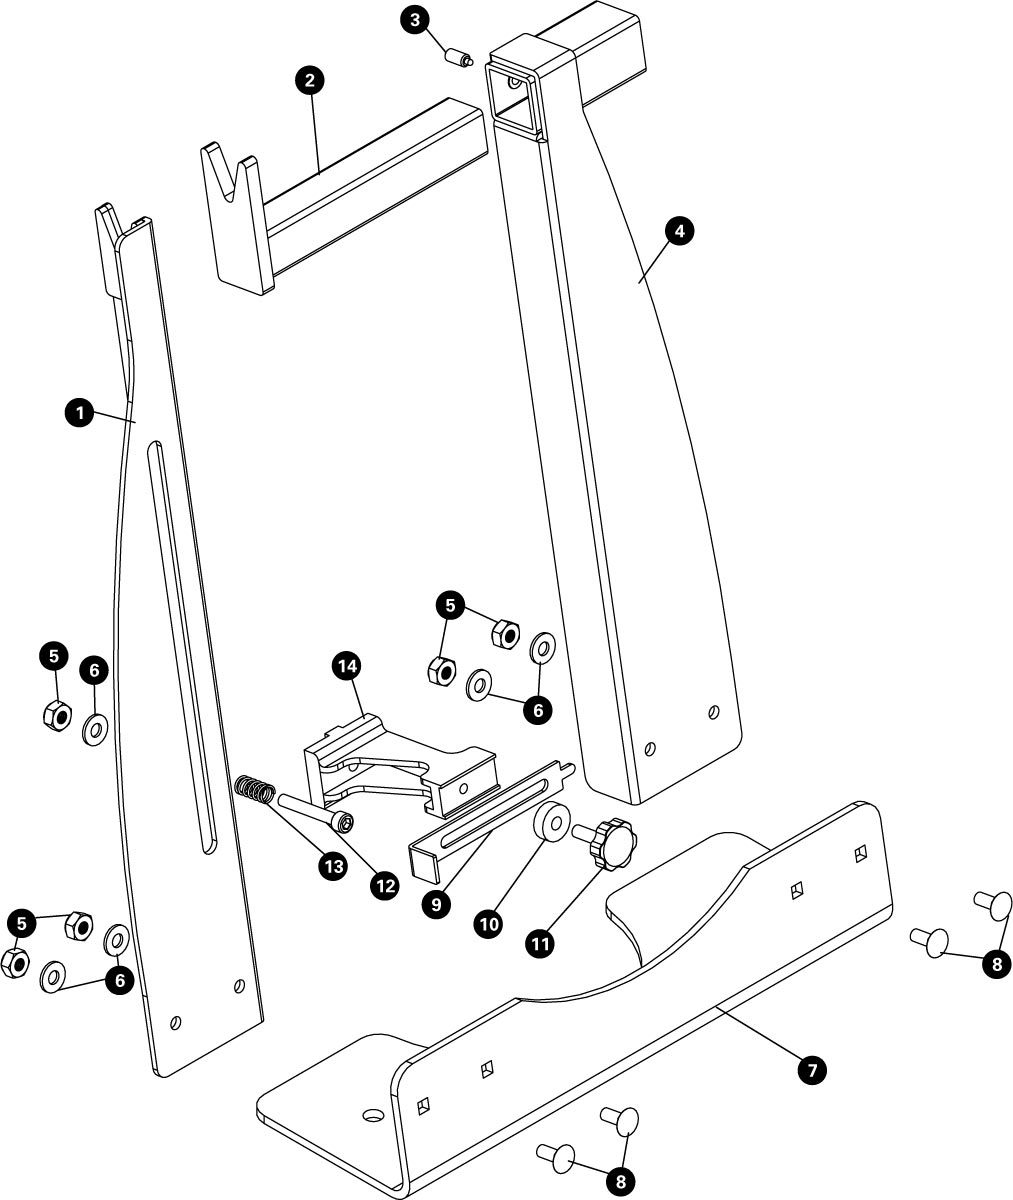 Parts diagram for TS-8 Home Mechanic Wheel Truing Stand, click to enlarge